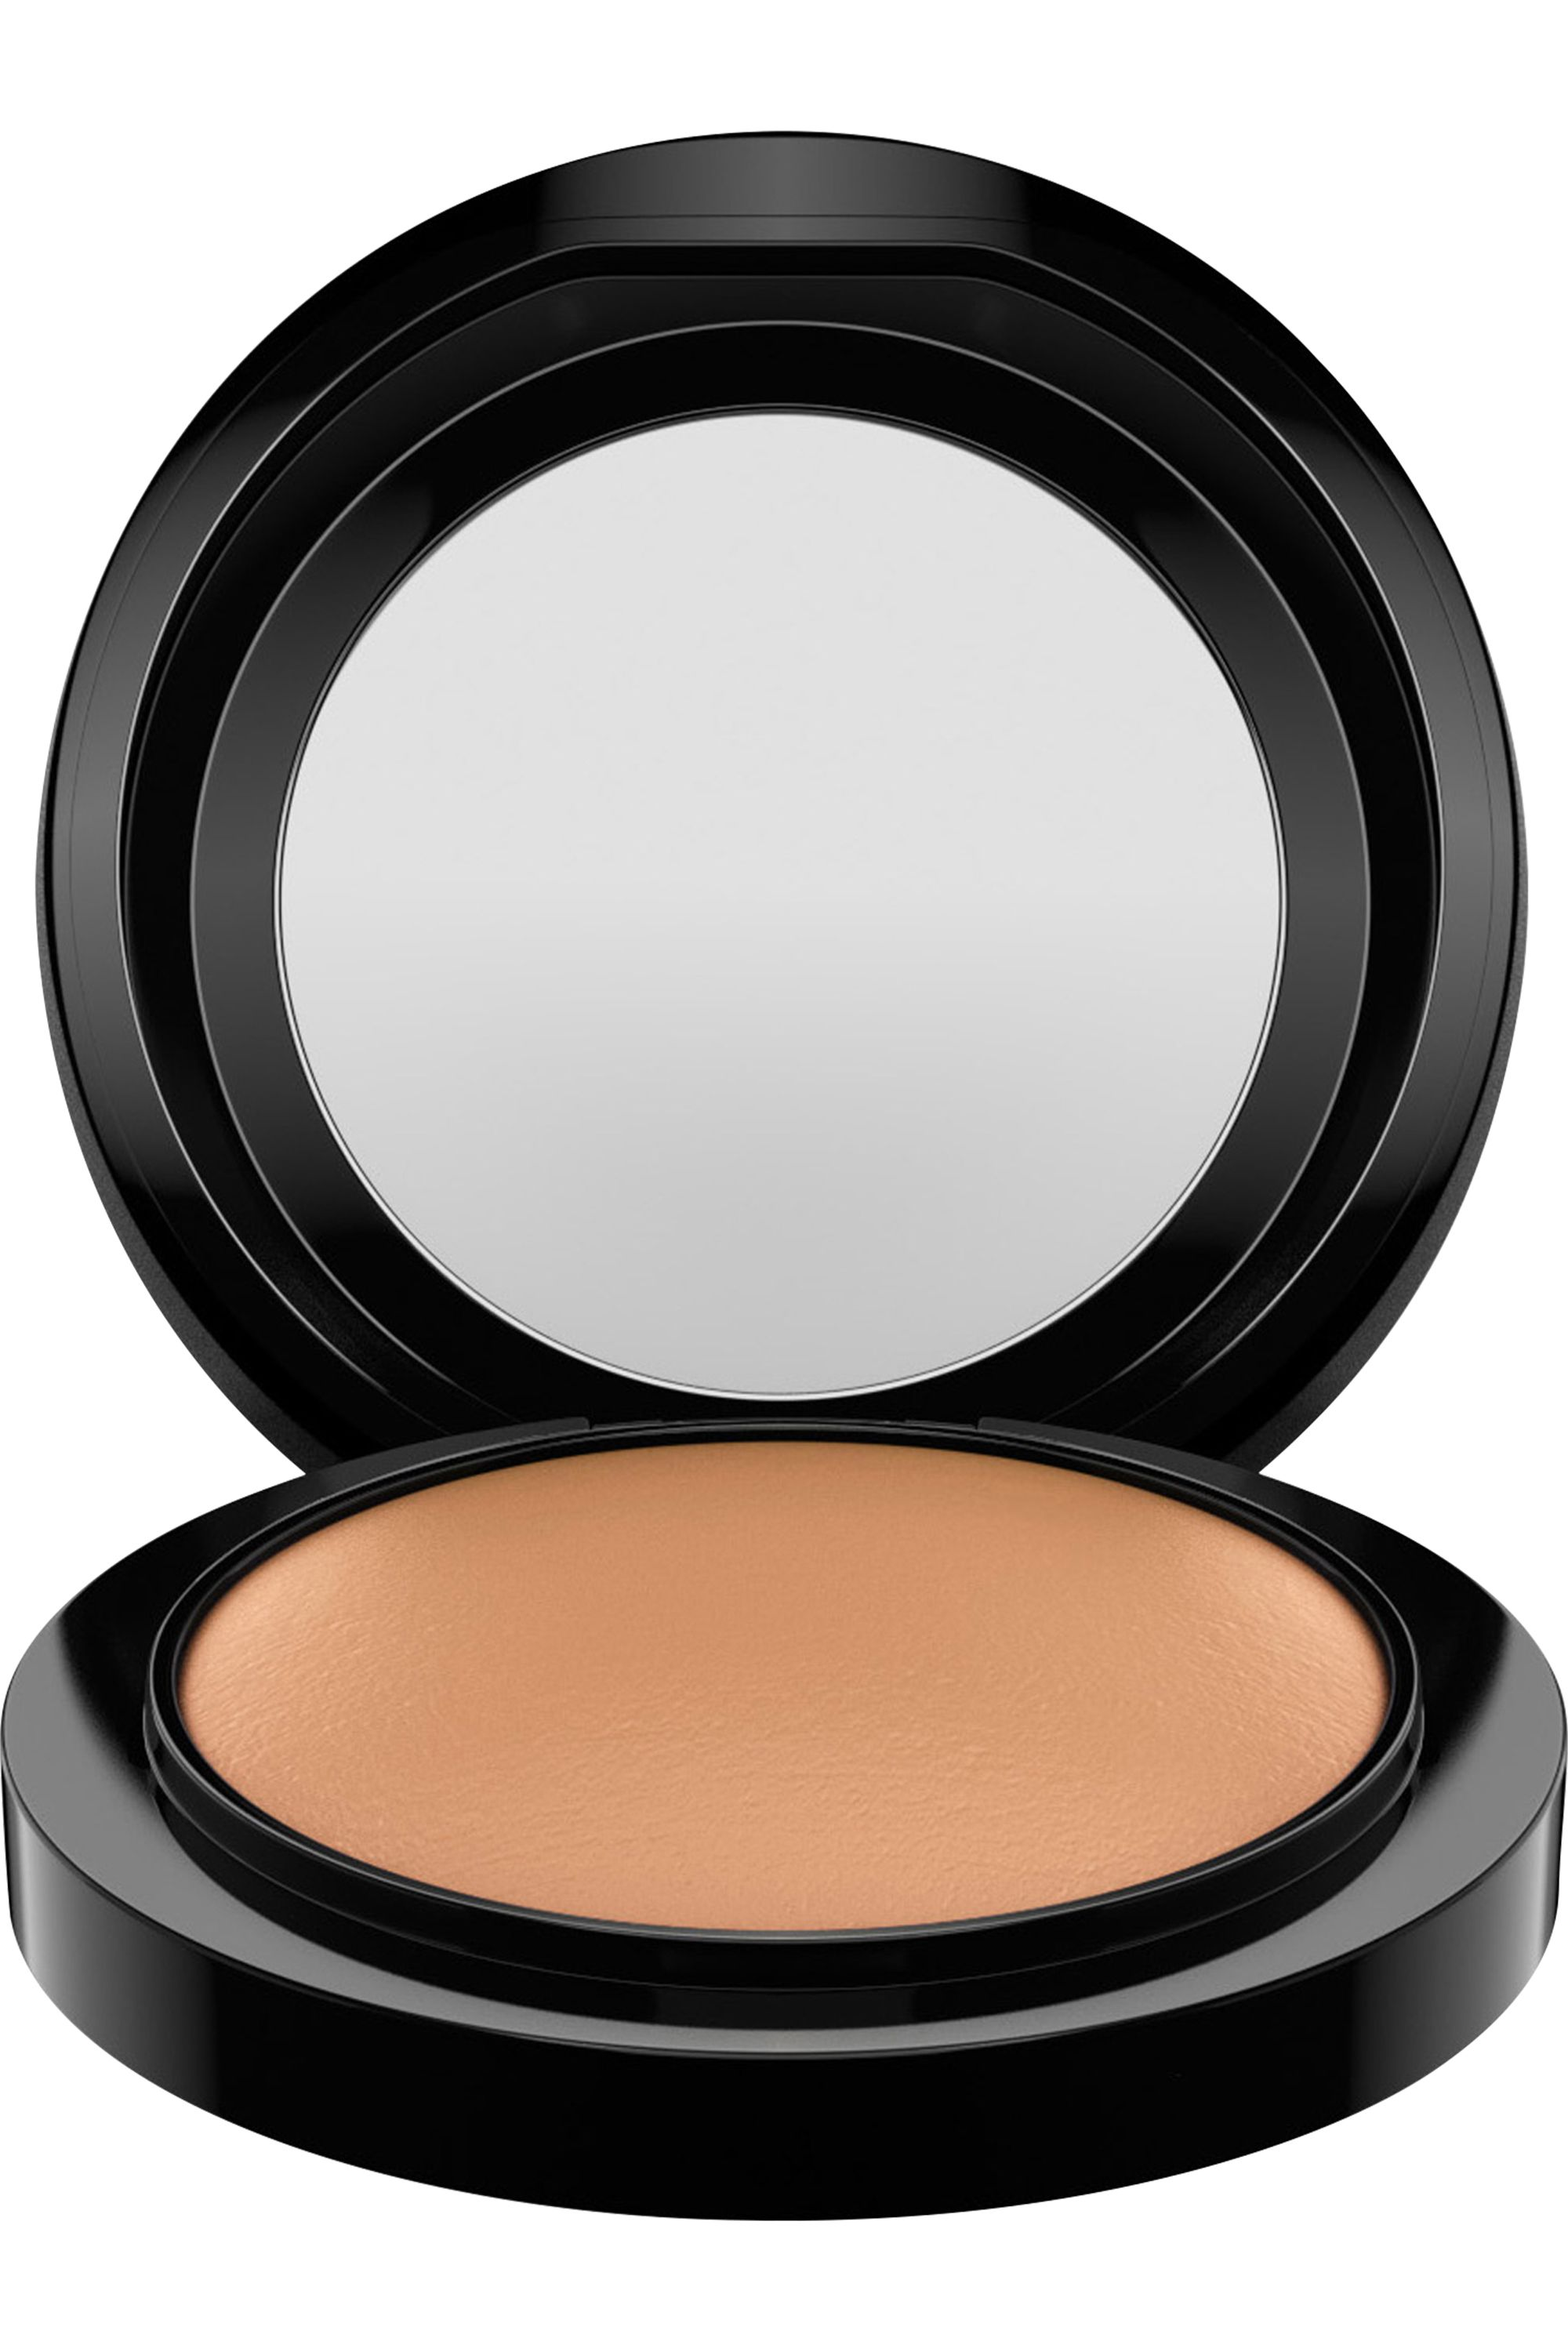 Blissim : M.A.C - Poudre Compacte Mineralize Skinfinish Natural - Give Me Sun!